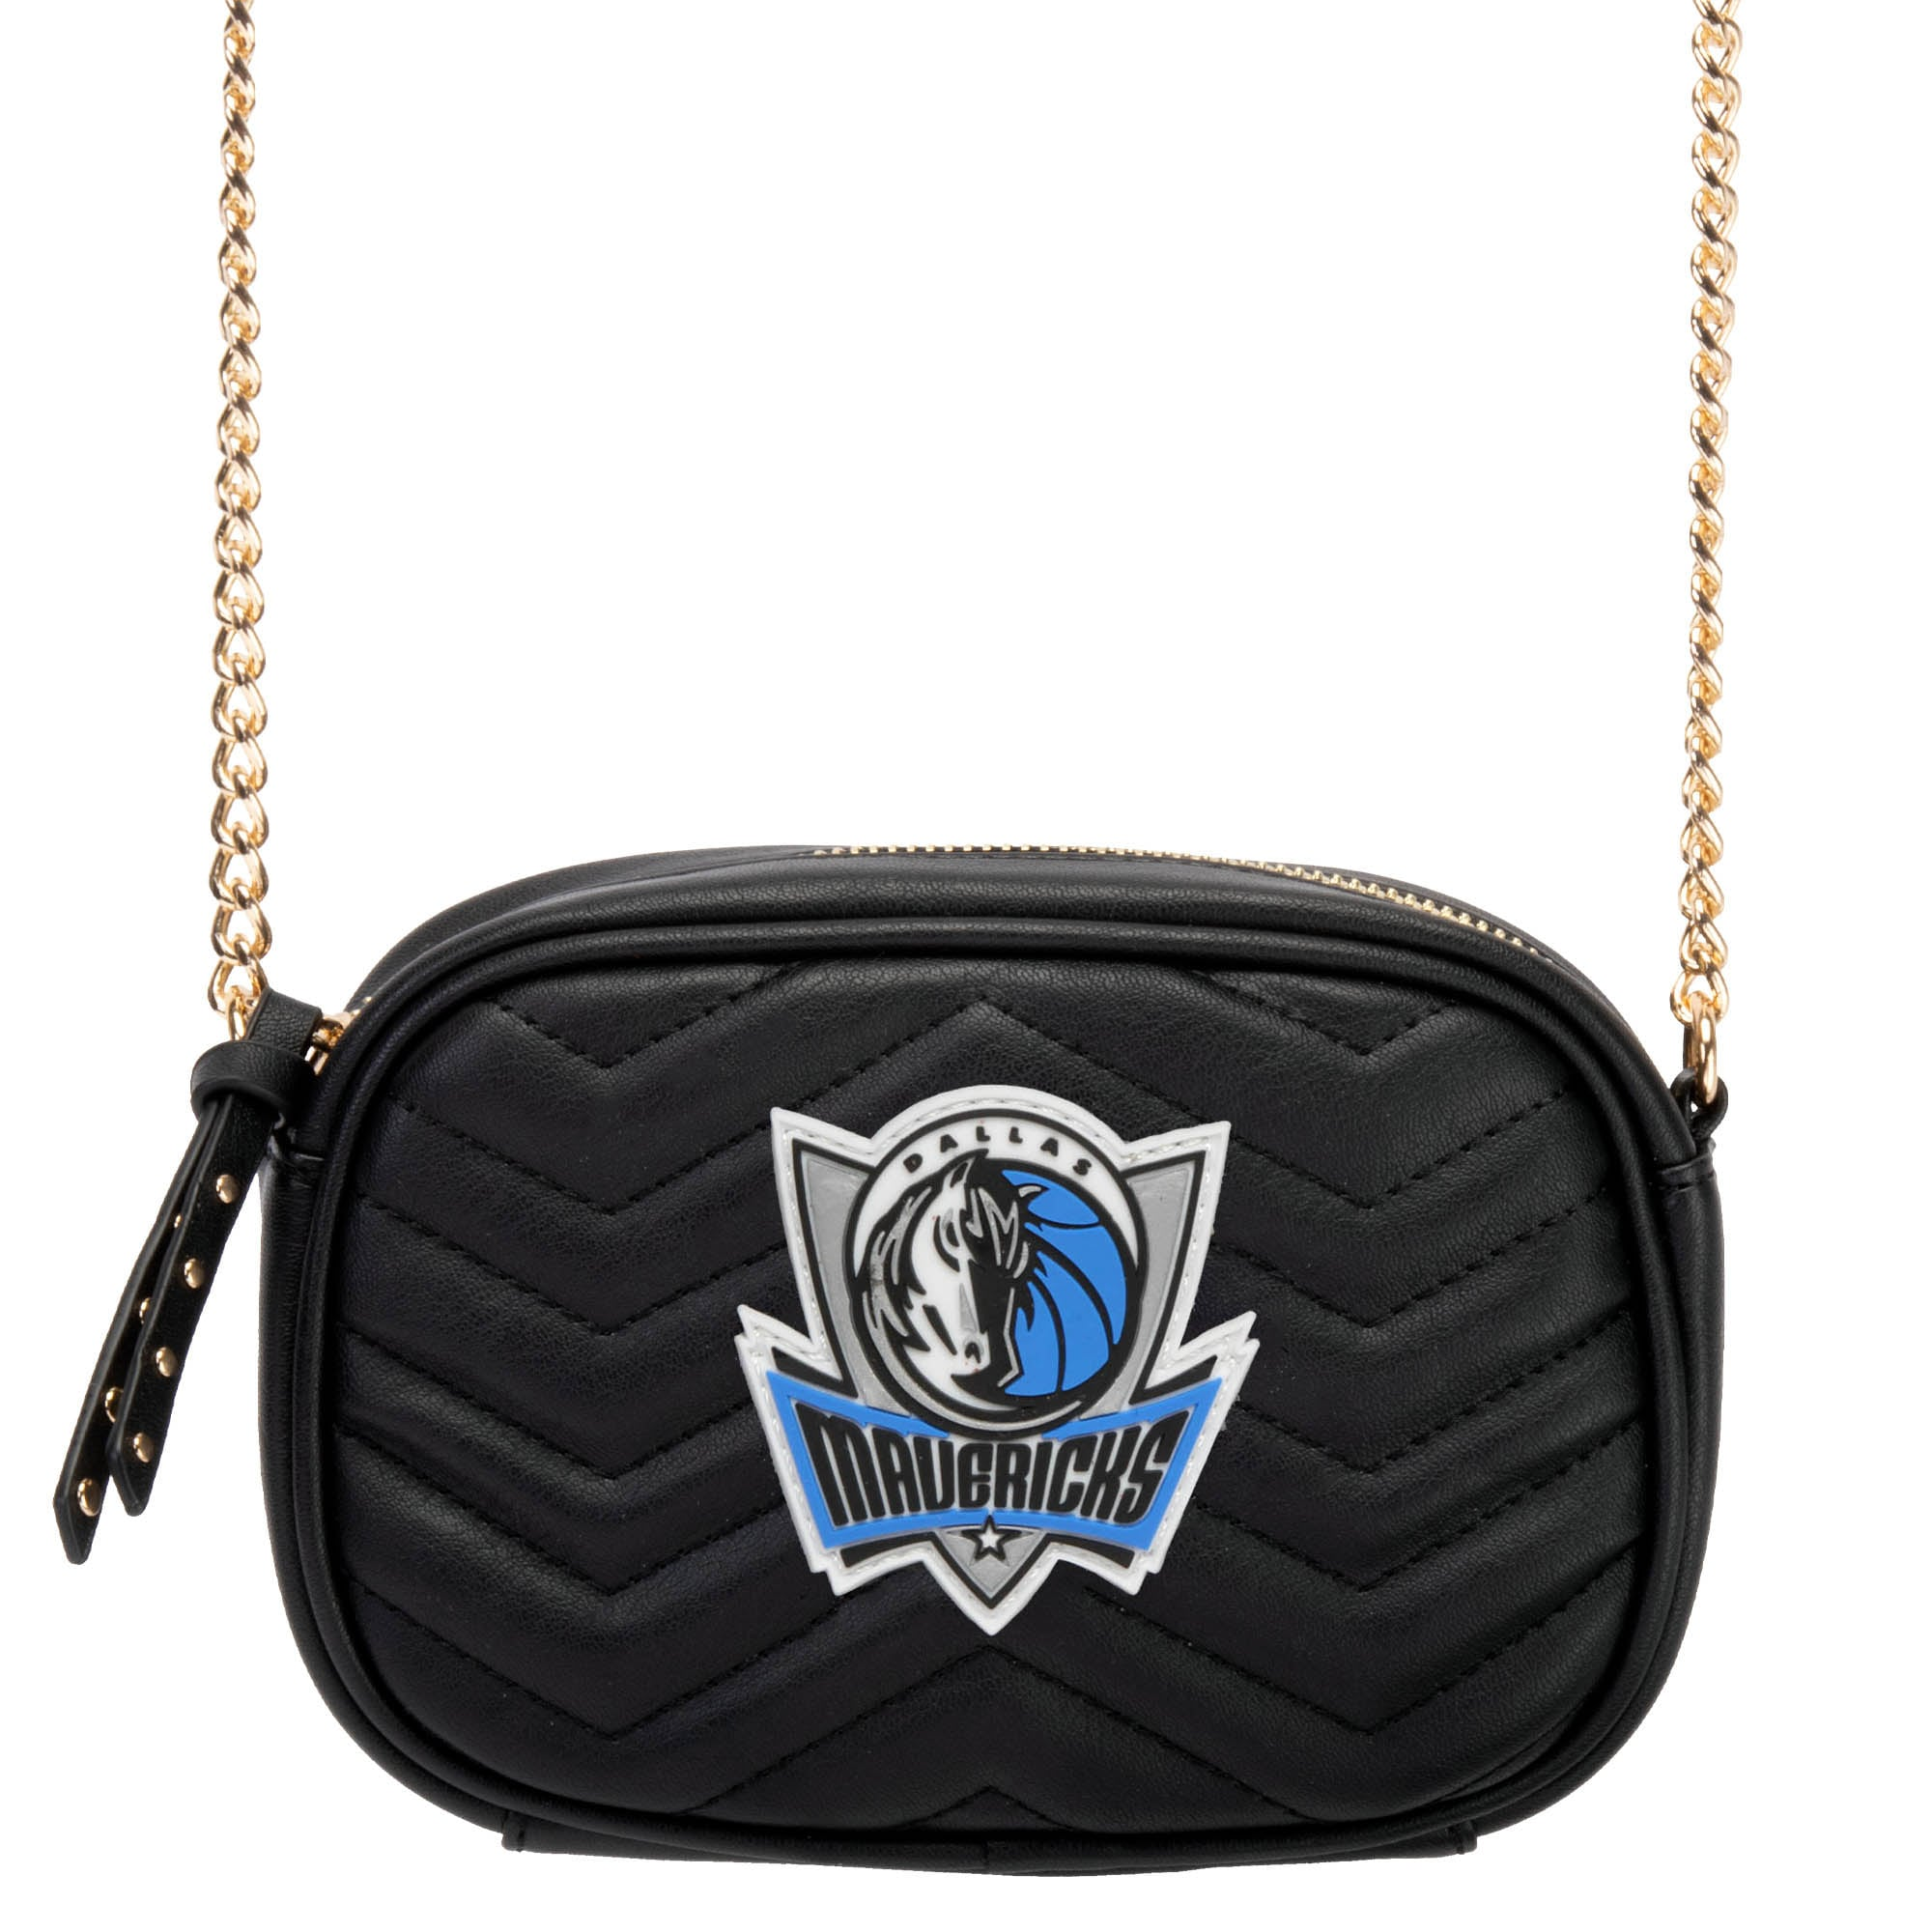 Dallas Mavericks Women's Crossbody Bag - Black